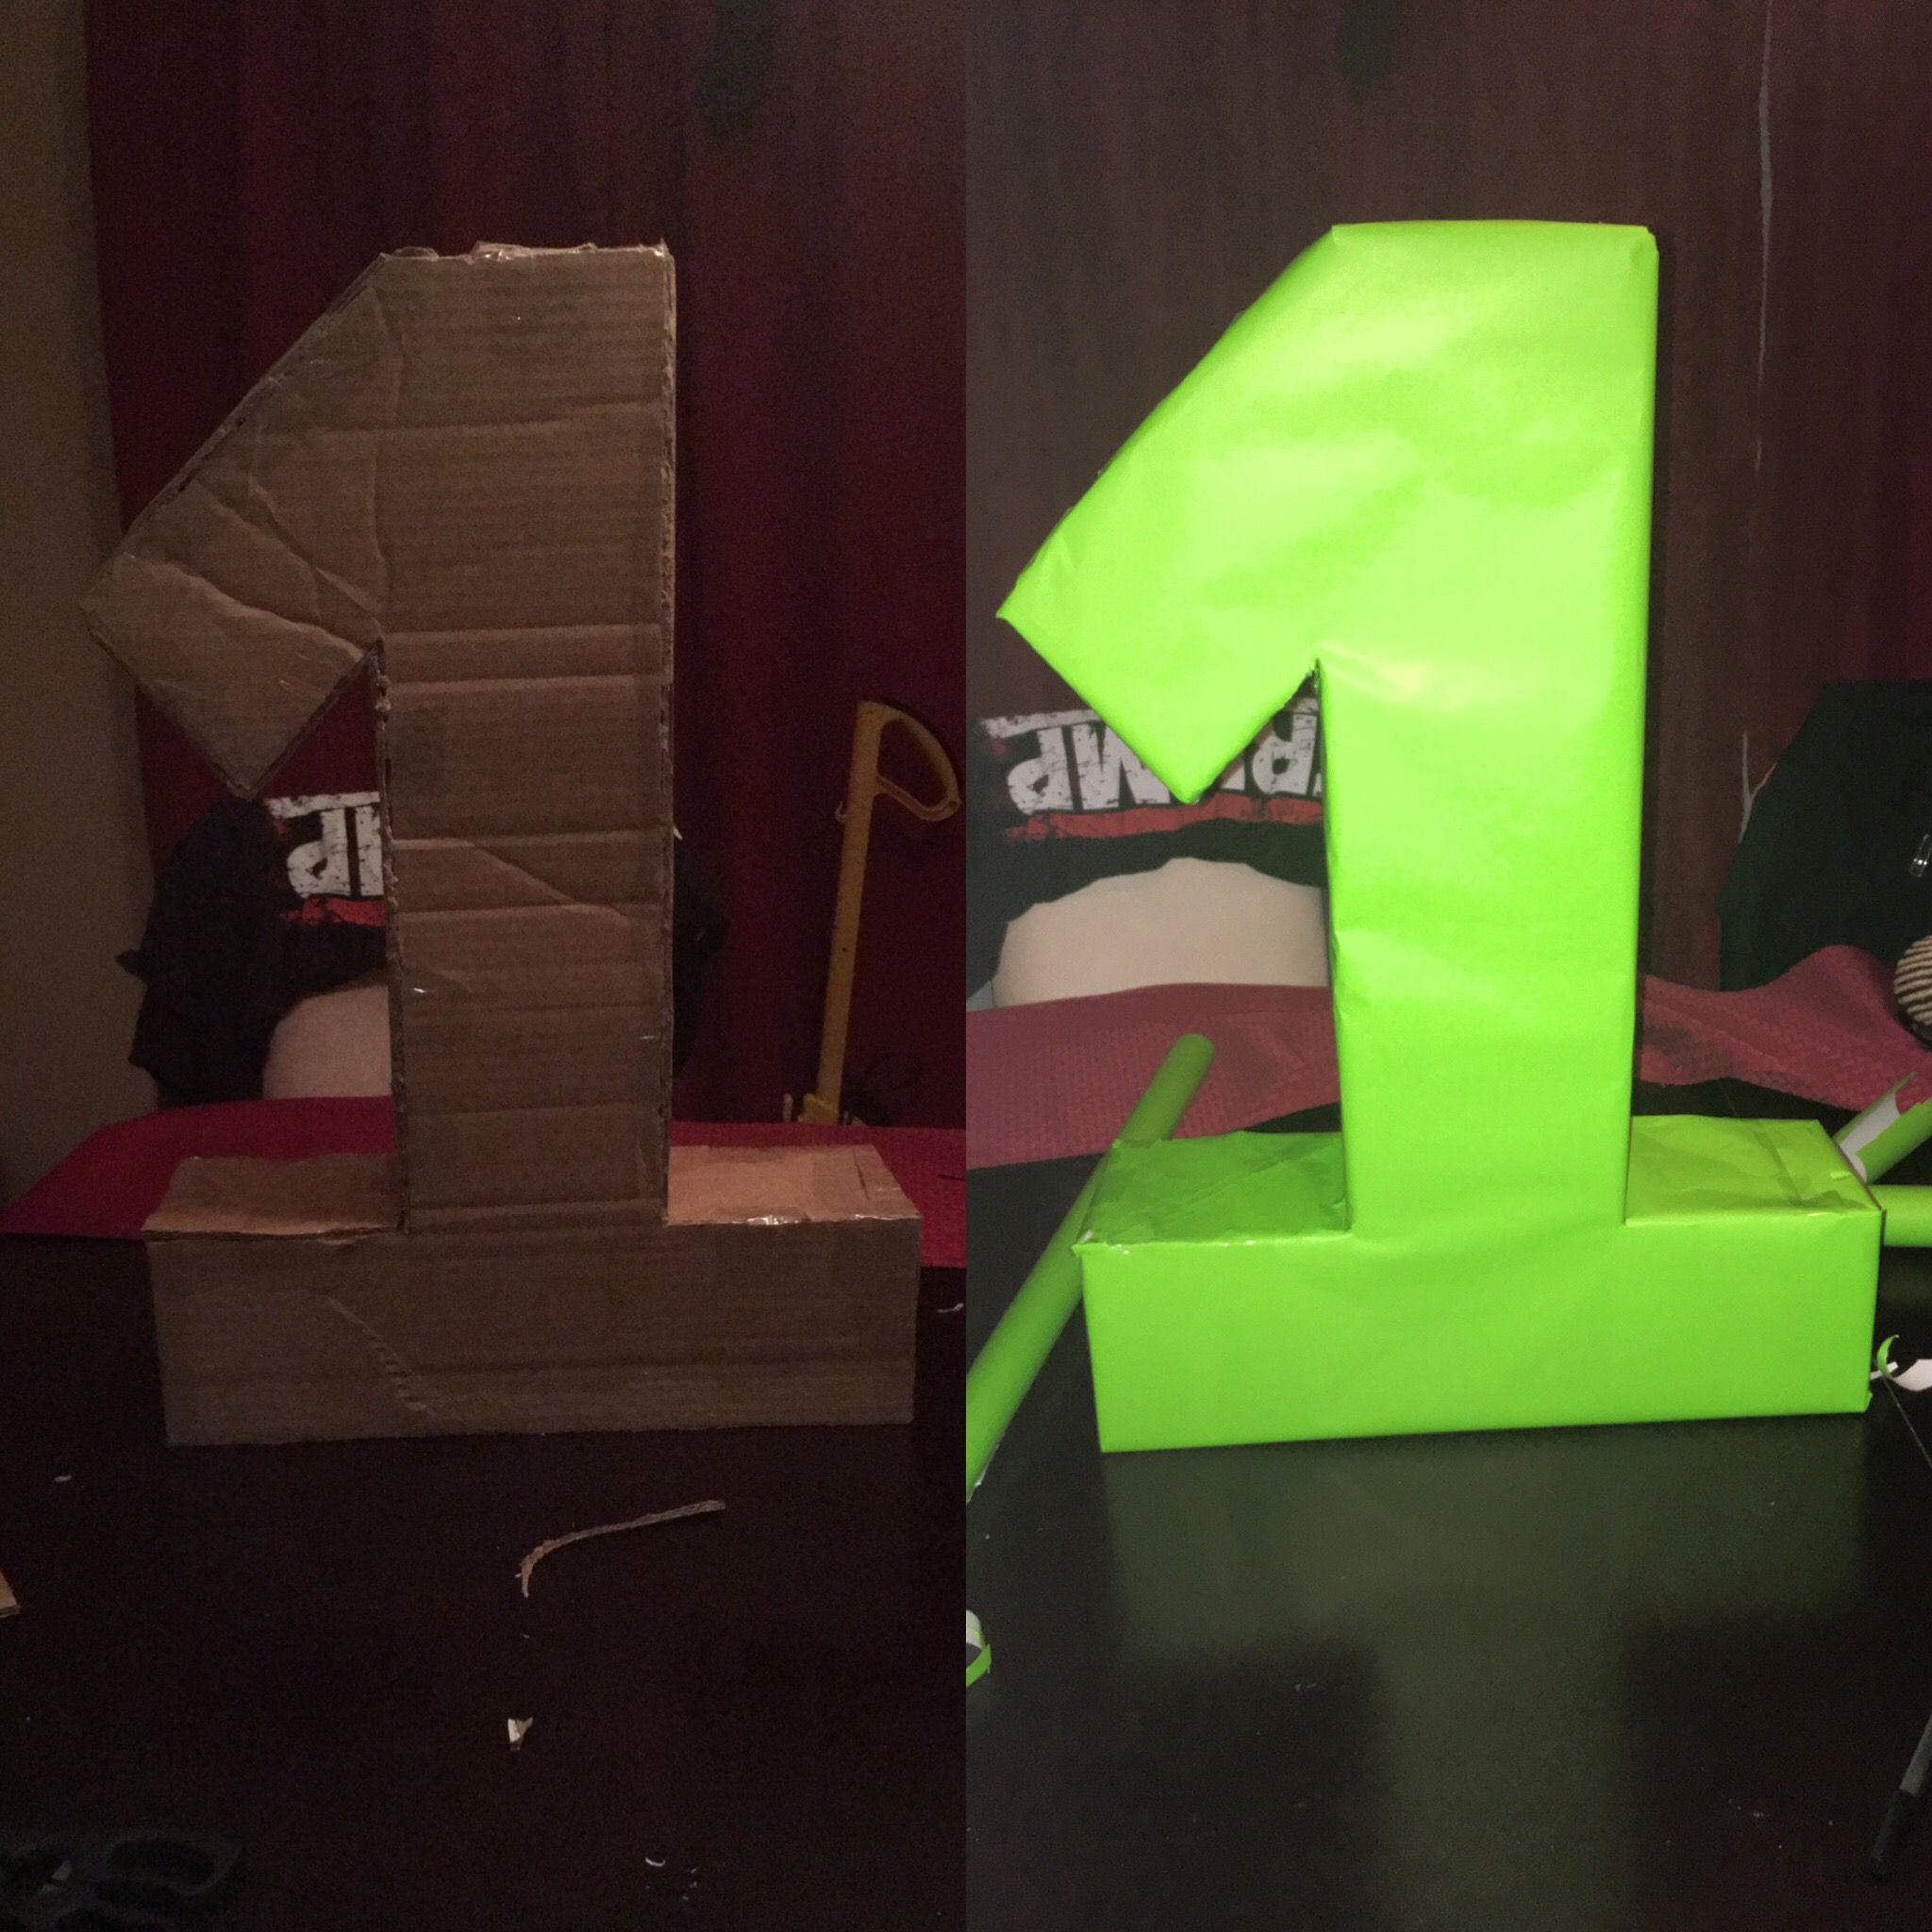 Cardboard 1 for E's 1birthday  (Monsters Inc Theme) 💚💚